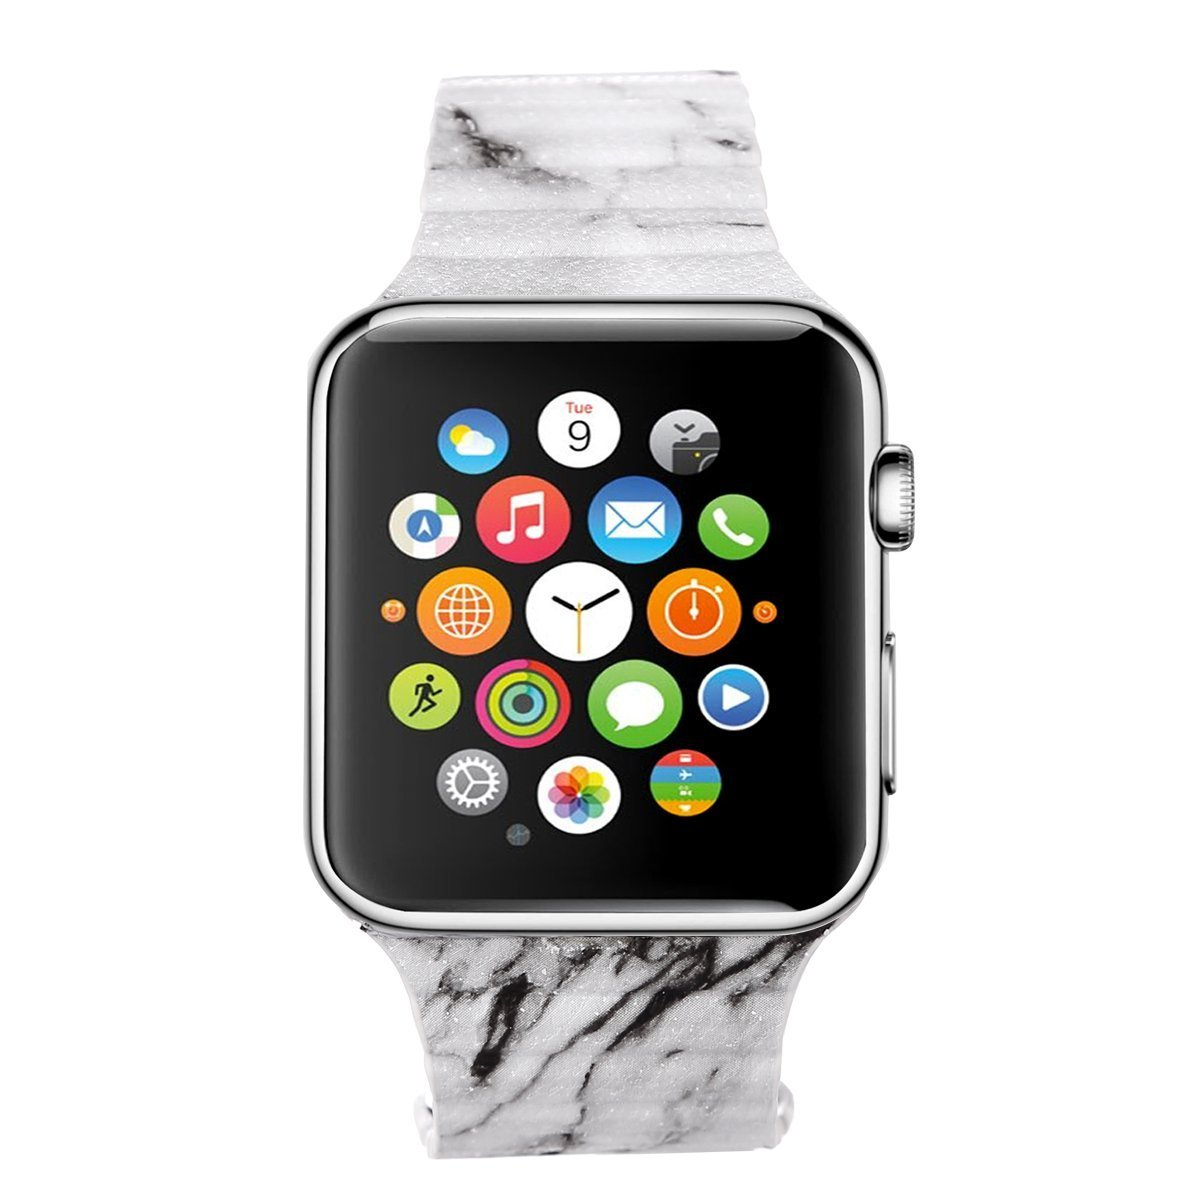 Apple Watch Band 42mm, SONICE Painting Leather Loop with Adjustable Magnetic Closure iWatch Band Replacement Bracelet Strap for Apple Watch Sport & Edition (Marble 42MM)